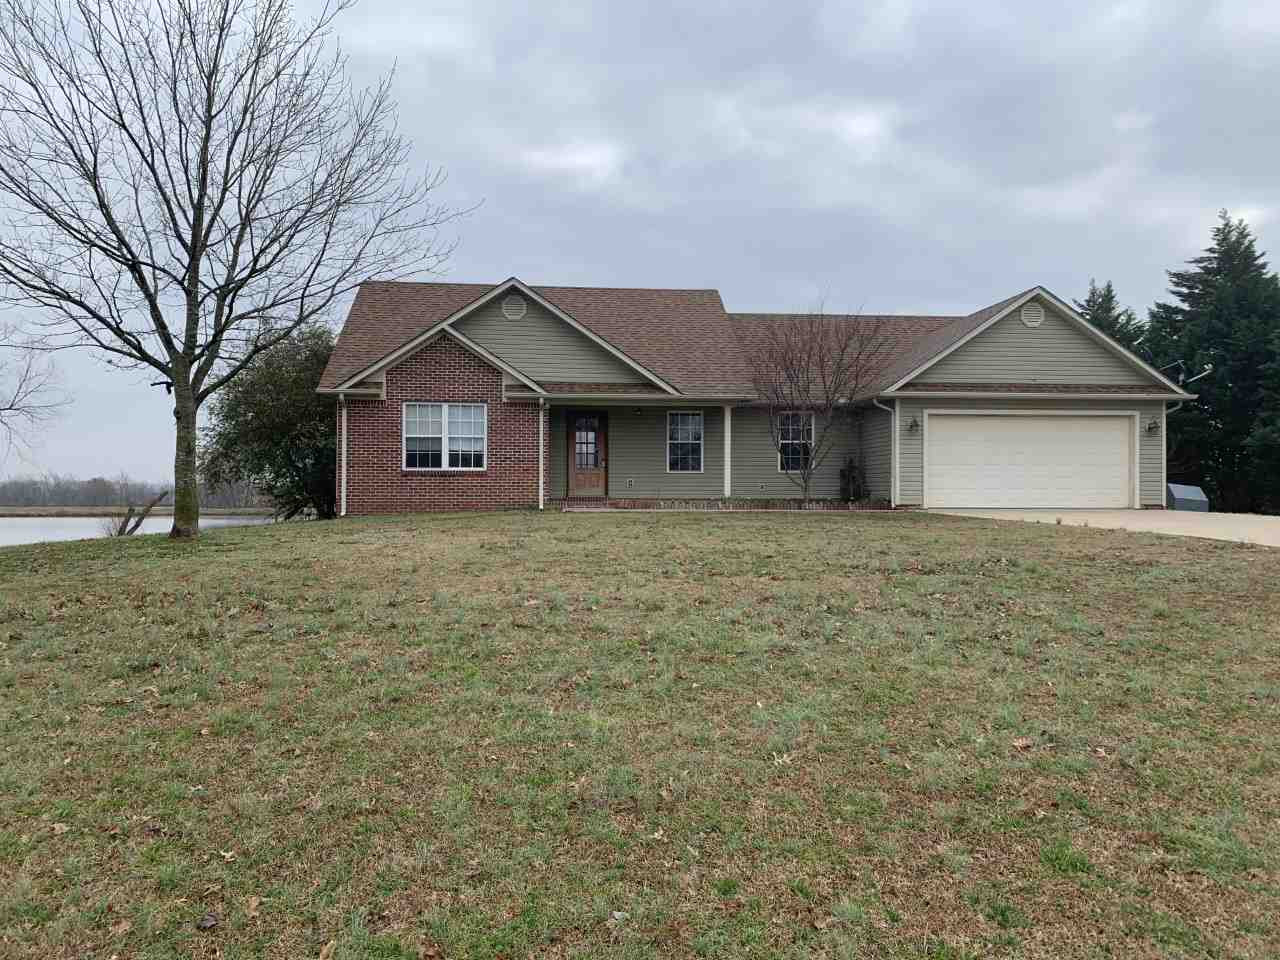 150 Polo Dr Drive,Dyersburg,Tennessee 38024,3 Bedrooms Bedrooms,2 BathroomsBathrooms,Residential,150 Polo Dr Drive,185832